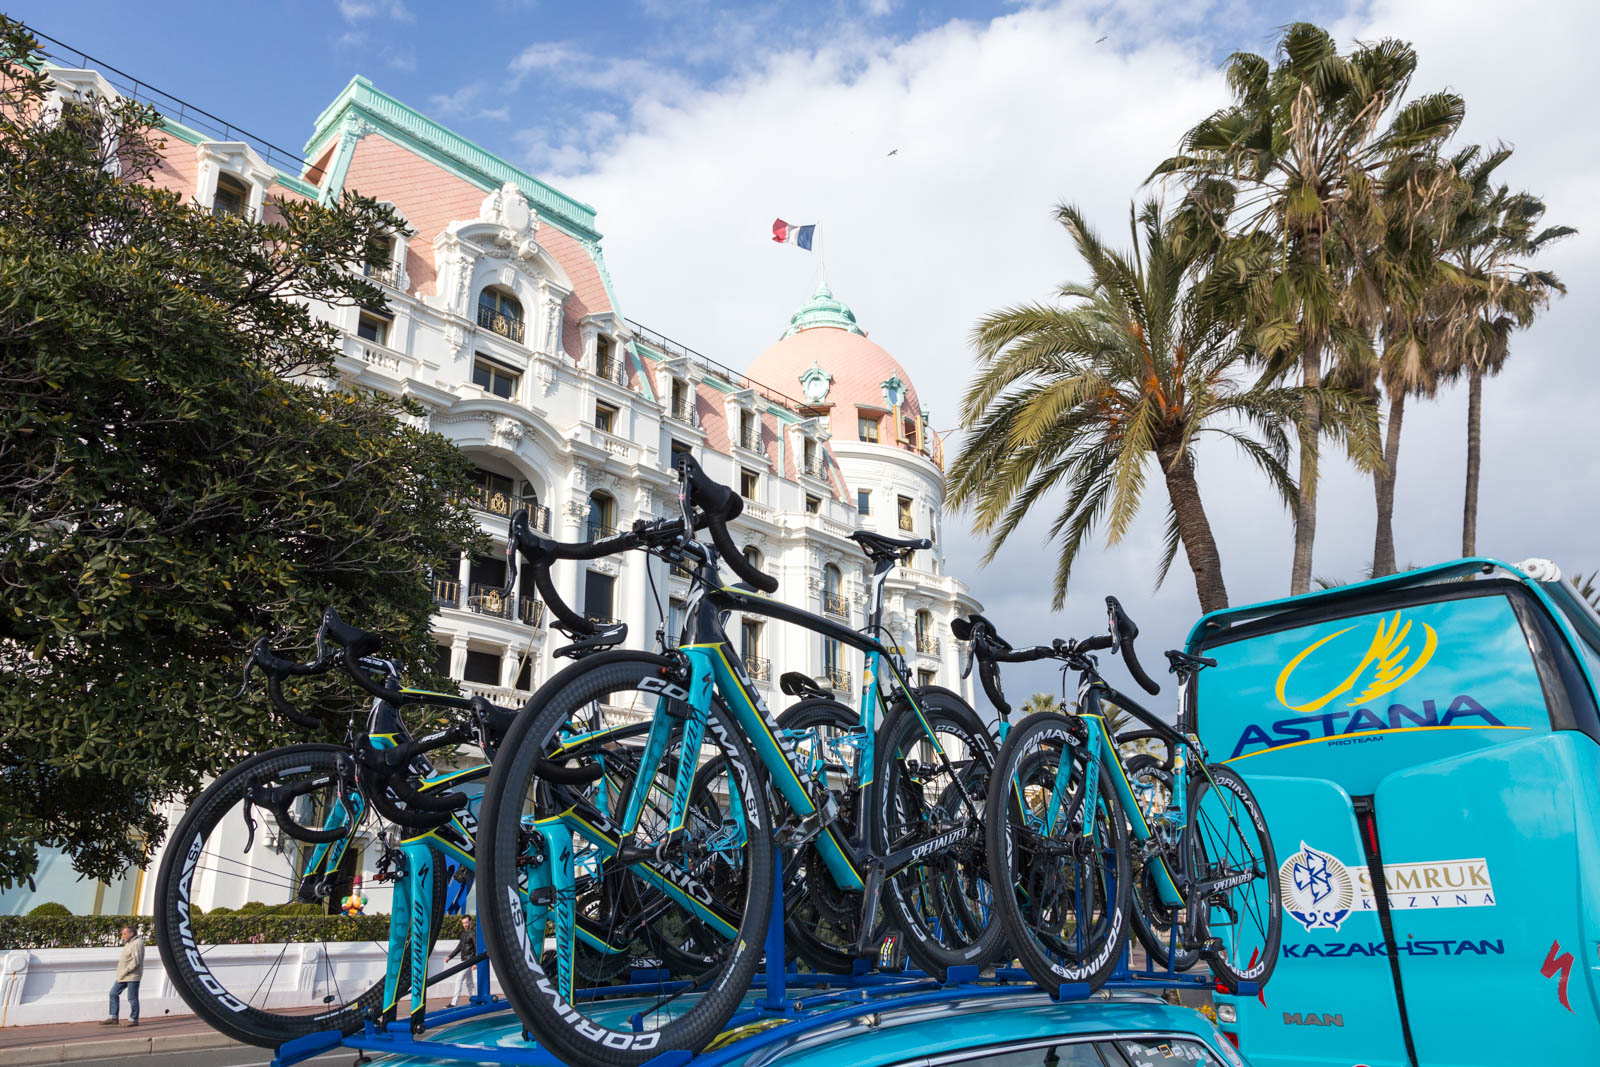 Paris-Nice Stage 7 - © Ivan Blanco 2016 LR-8655.jpg